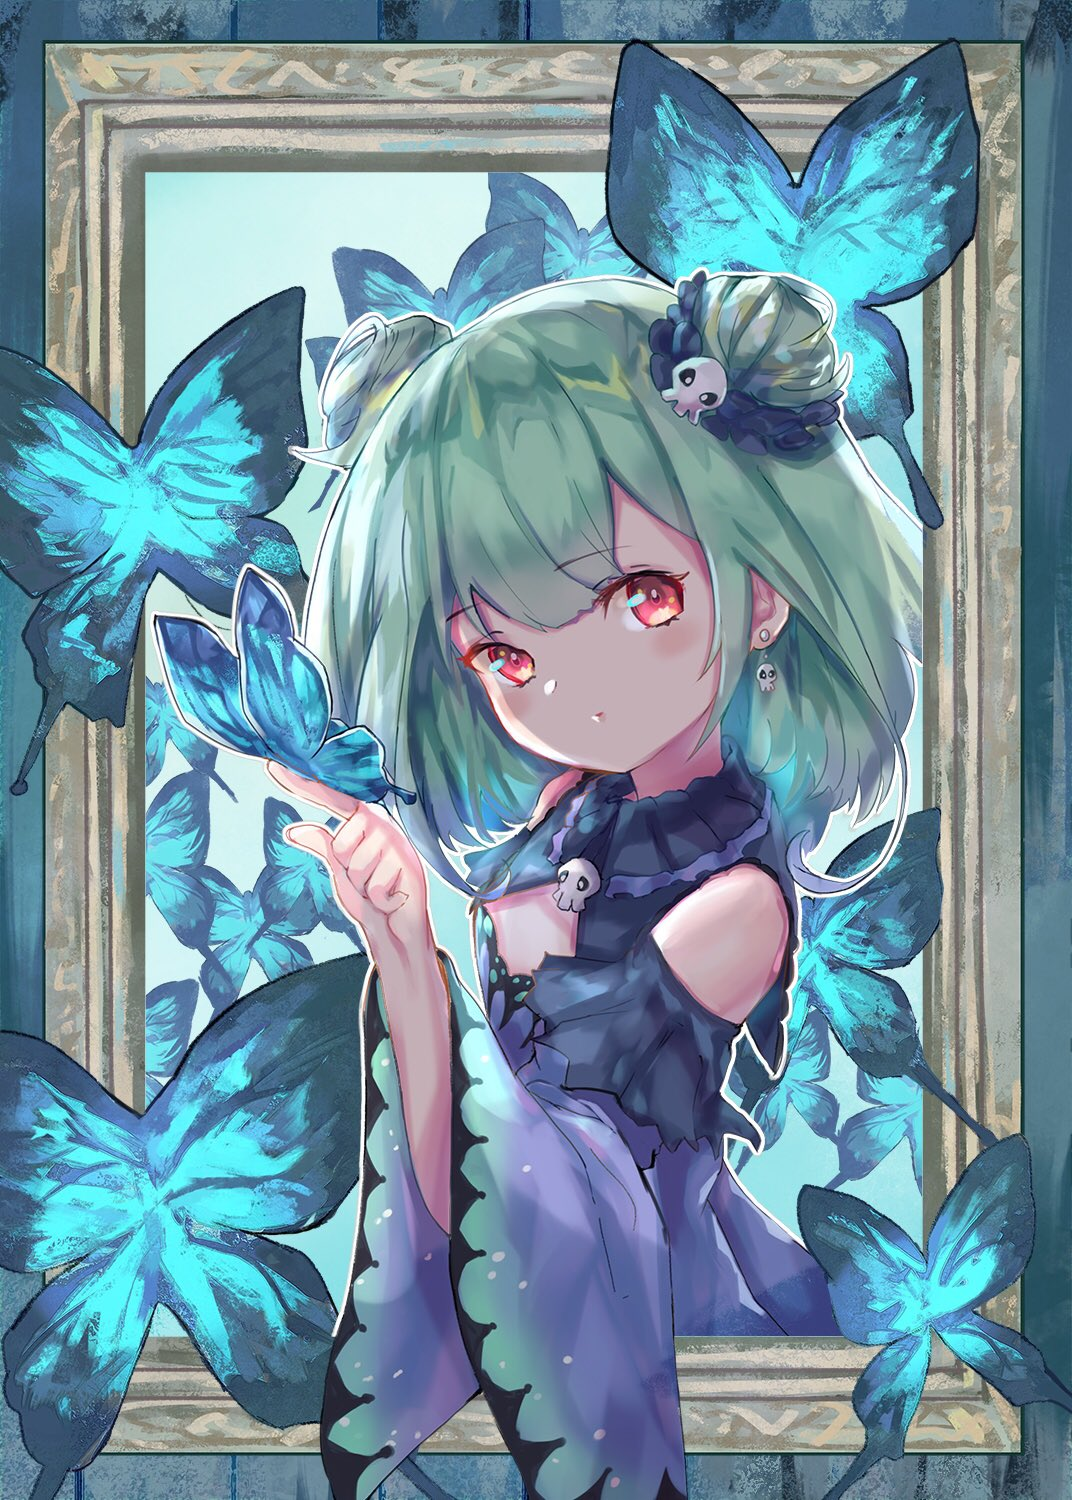 1girl bug butterfly detached_sleeves double_bun earrings eyebrows_visible_through_hair frame gradient_hair green_hair hair_ornament highres hololive insect jewelry multicolored_hair red_eyes shin_murasame skull_earrings skull_hair_ornament solo upper_body uruha_rushia virtual_youtuber